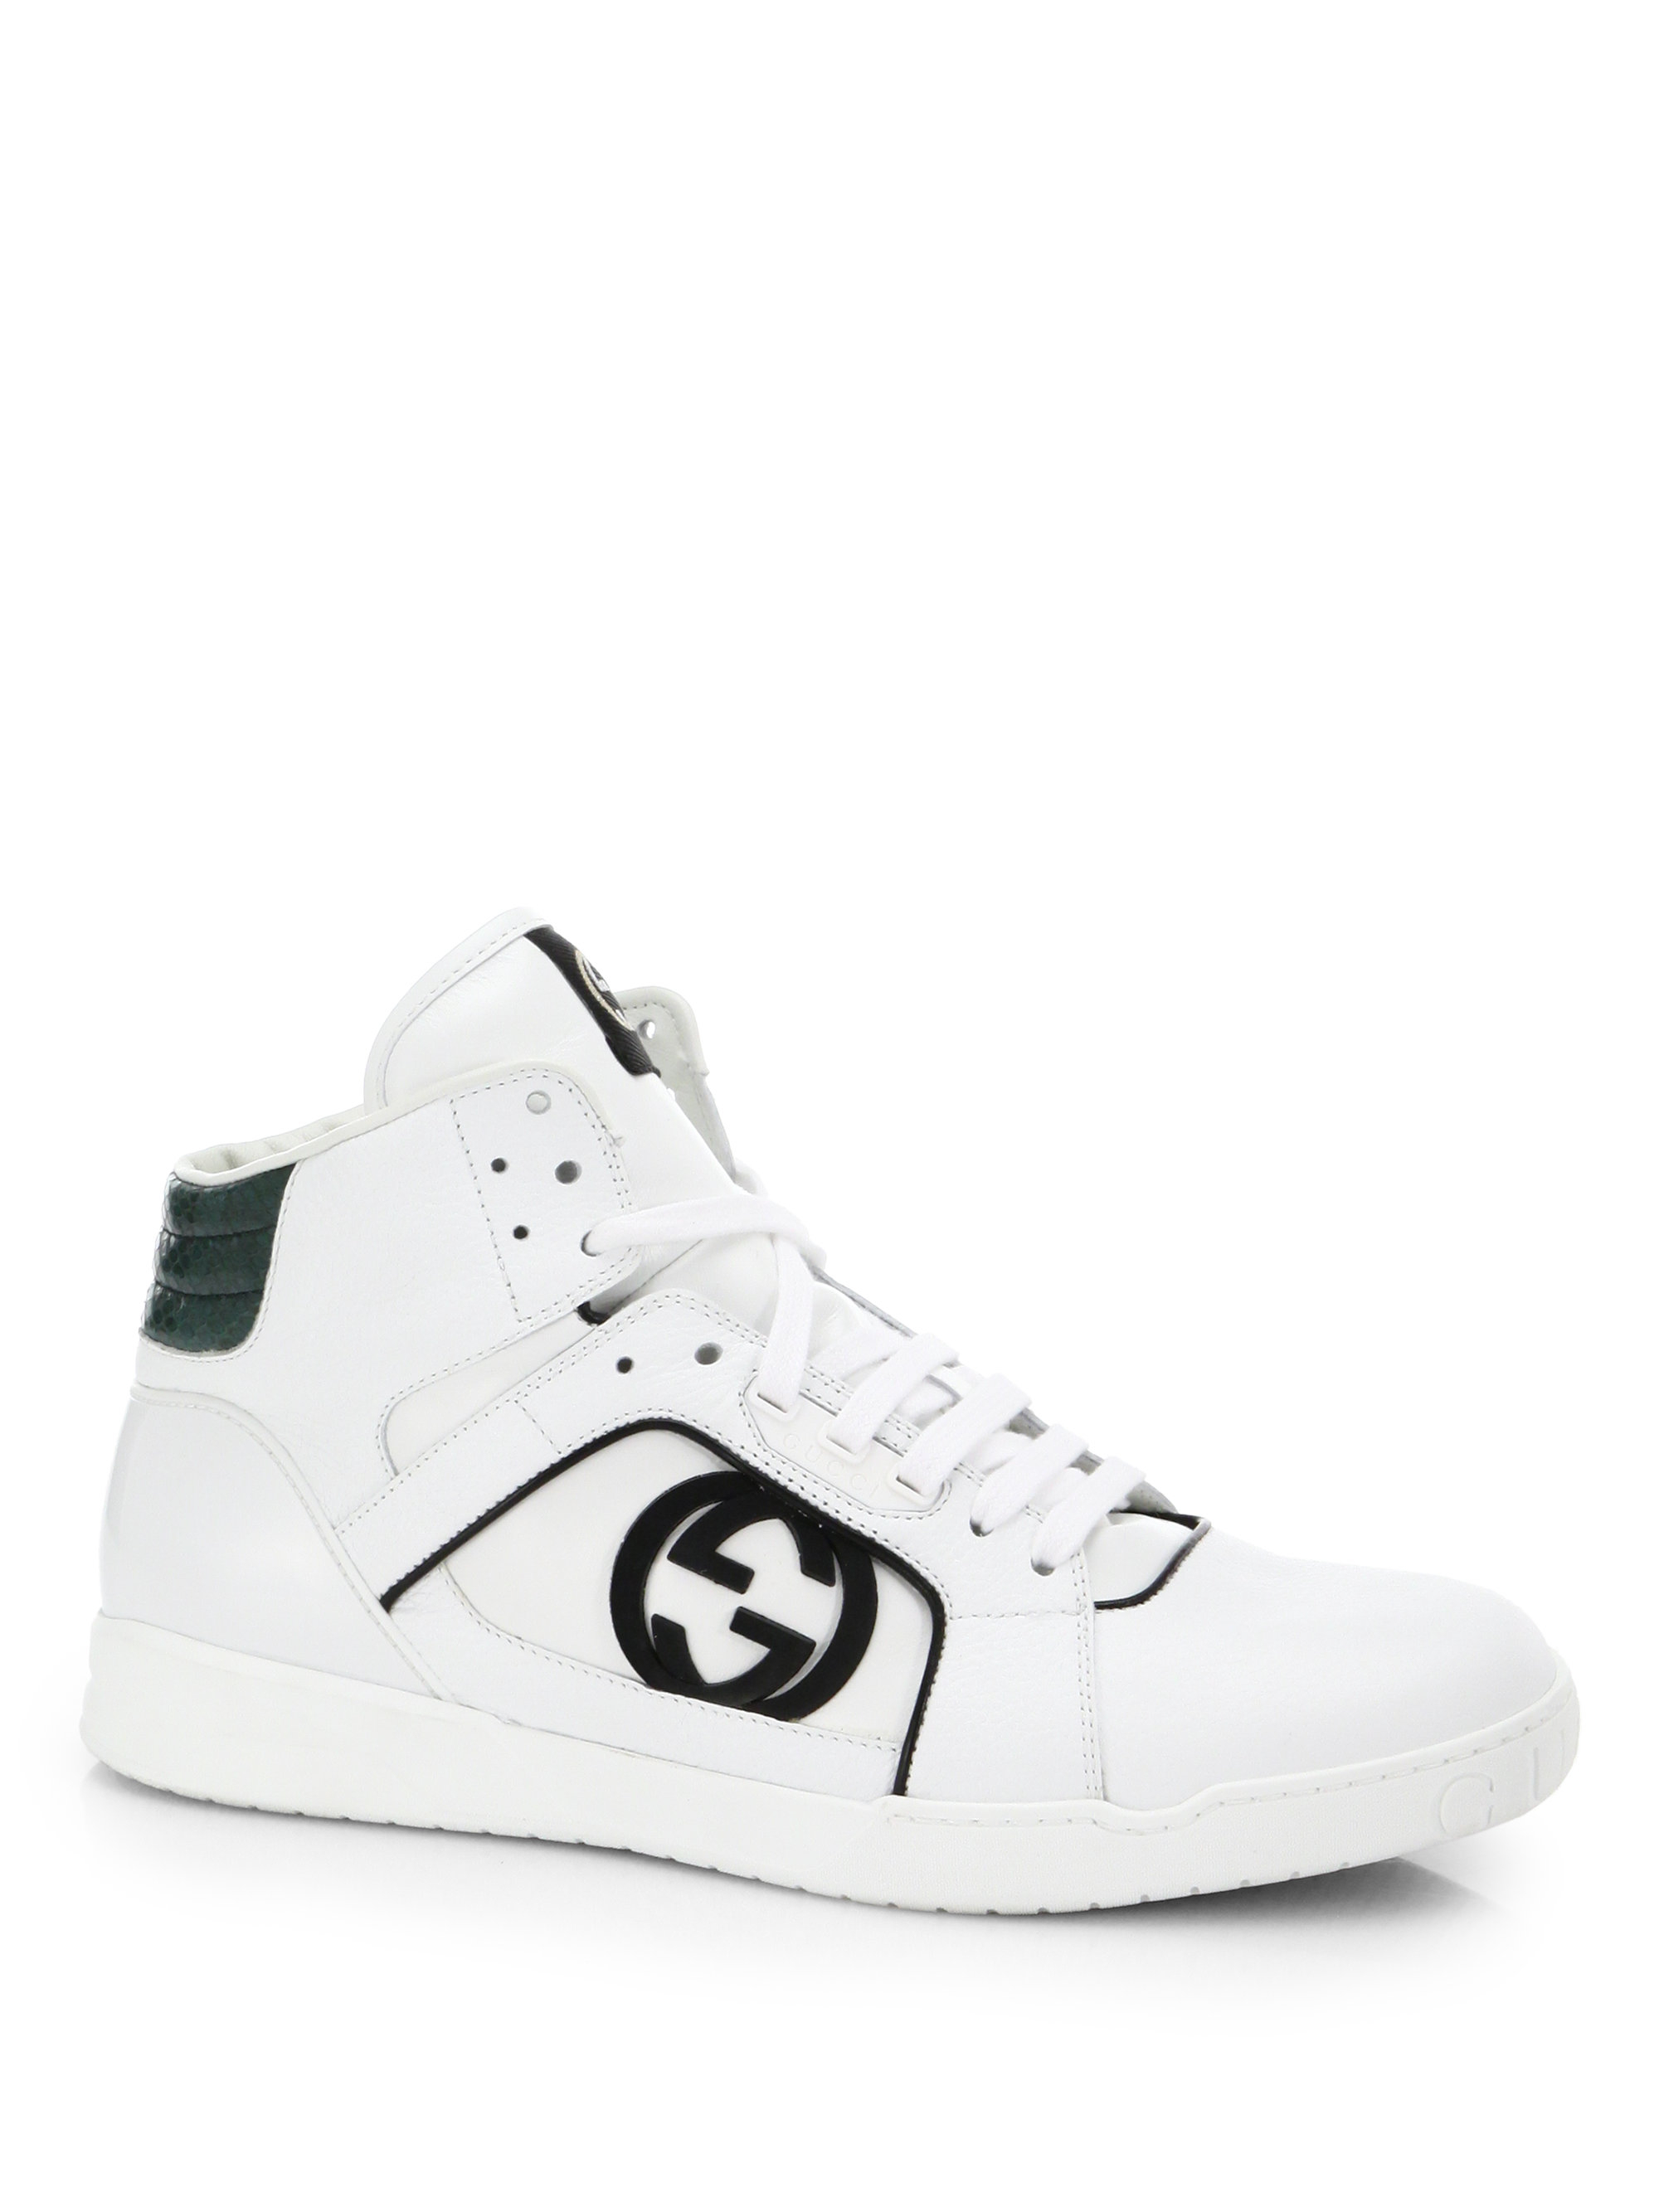 gucci rebound mid hi top sneaker in white for men lyst. Black Bedroom Furniture Sets. Home Design Ideas